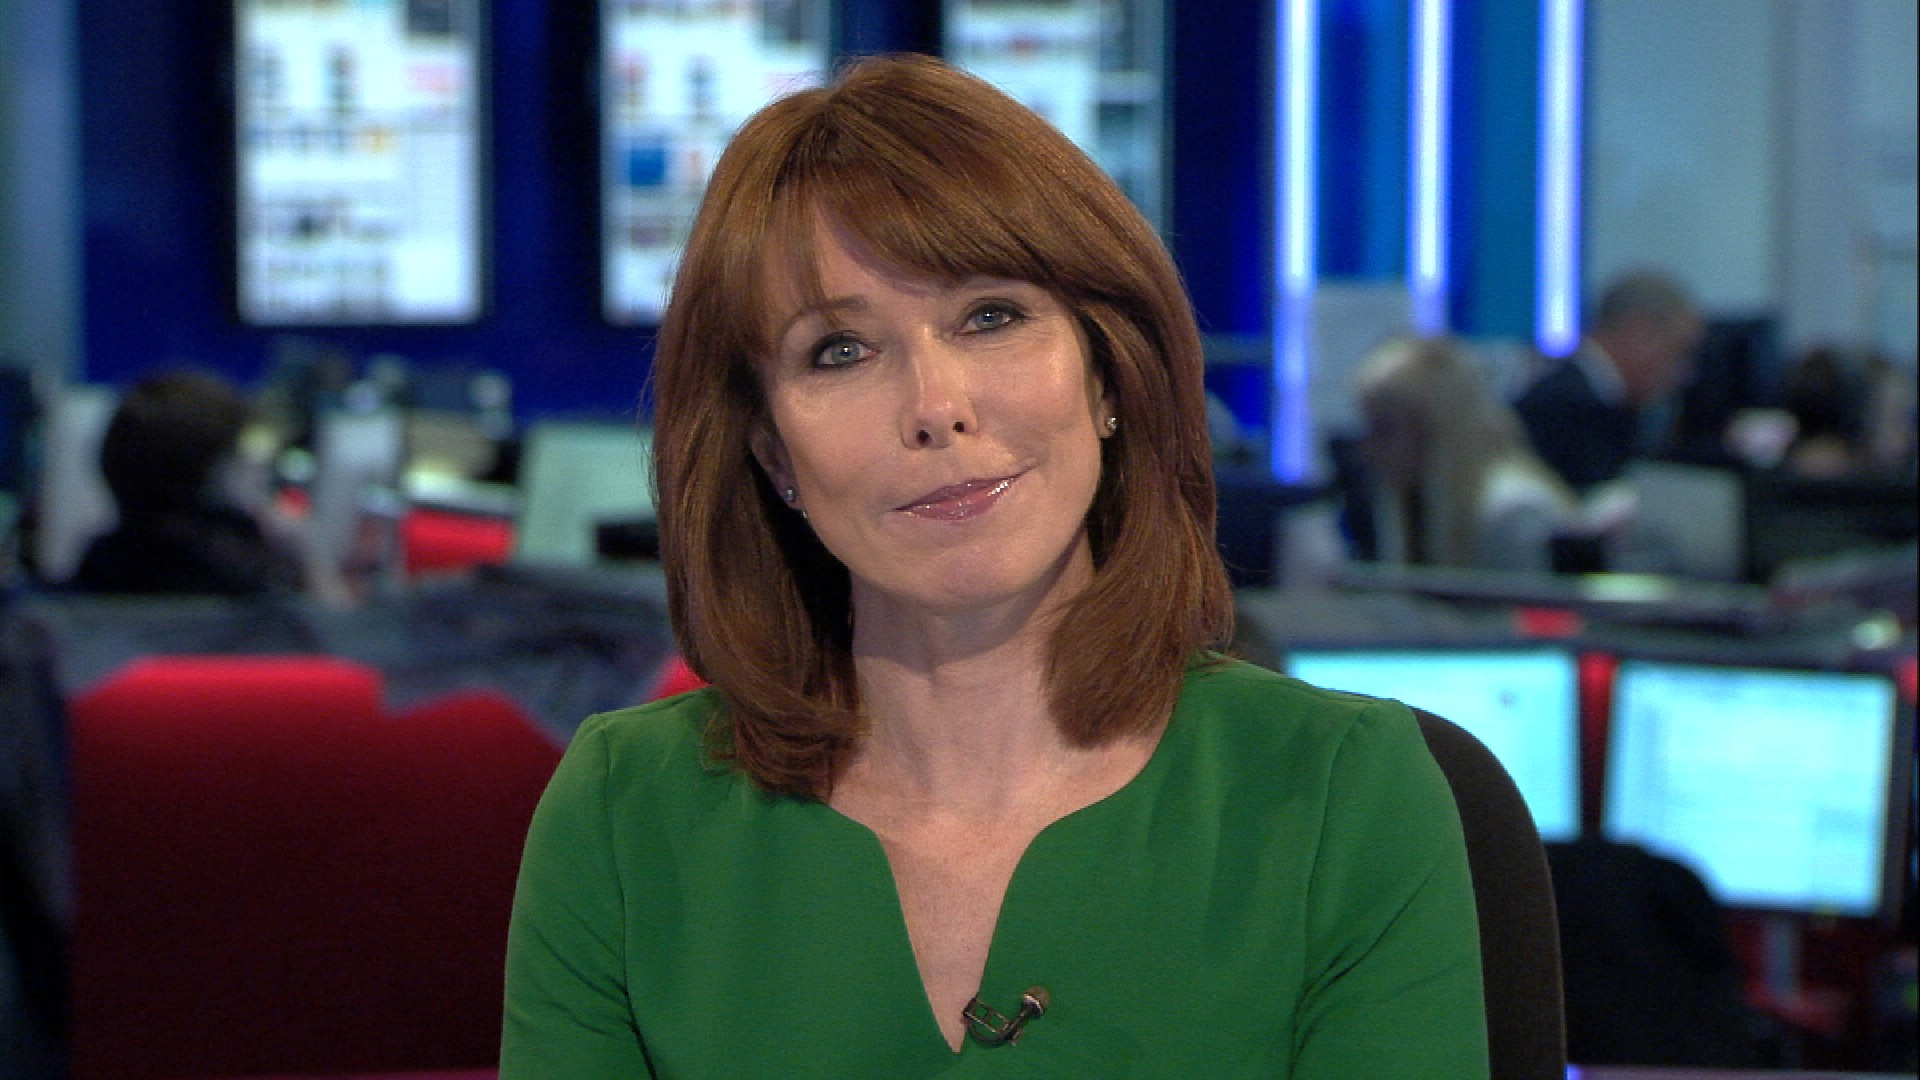 Kay Burley Celebrates 25 Years at Sky; Signs New 5 Year Deal